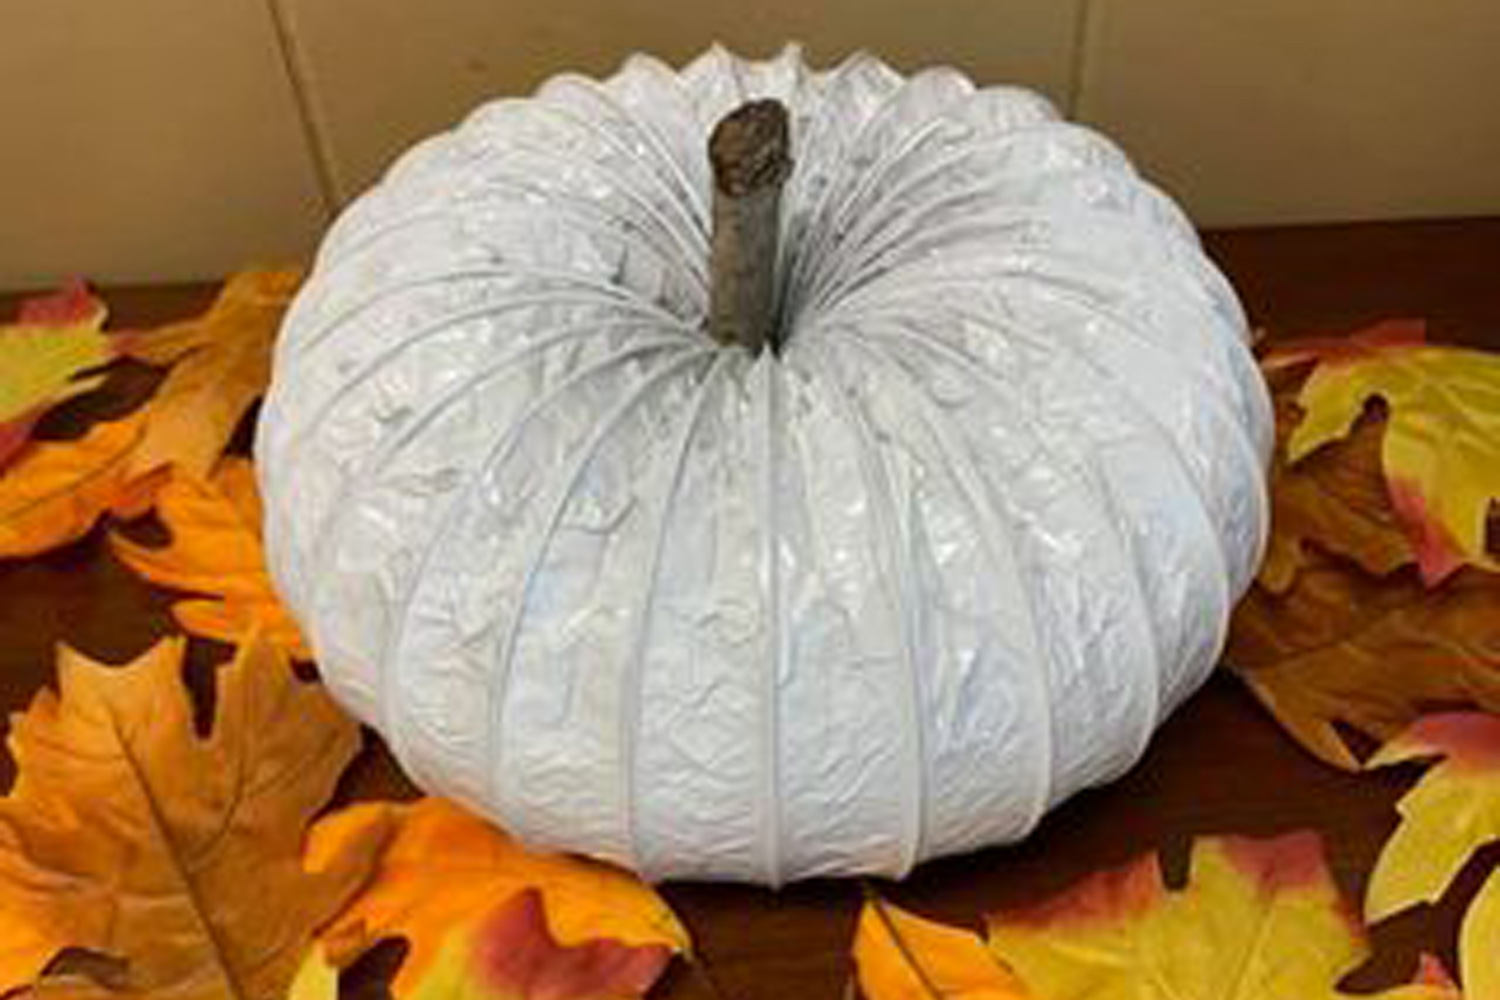 A pumpkin made from a drier vent.